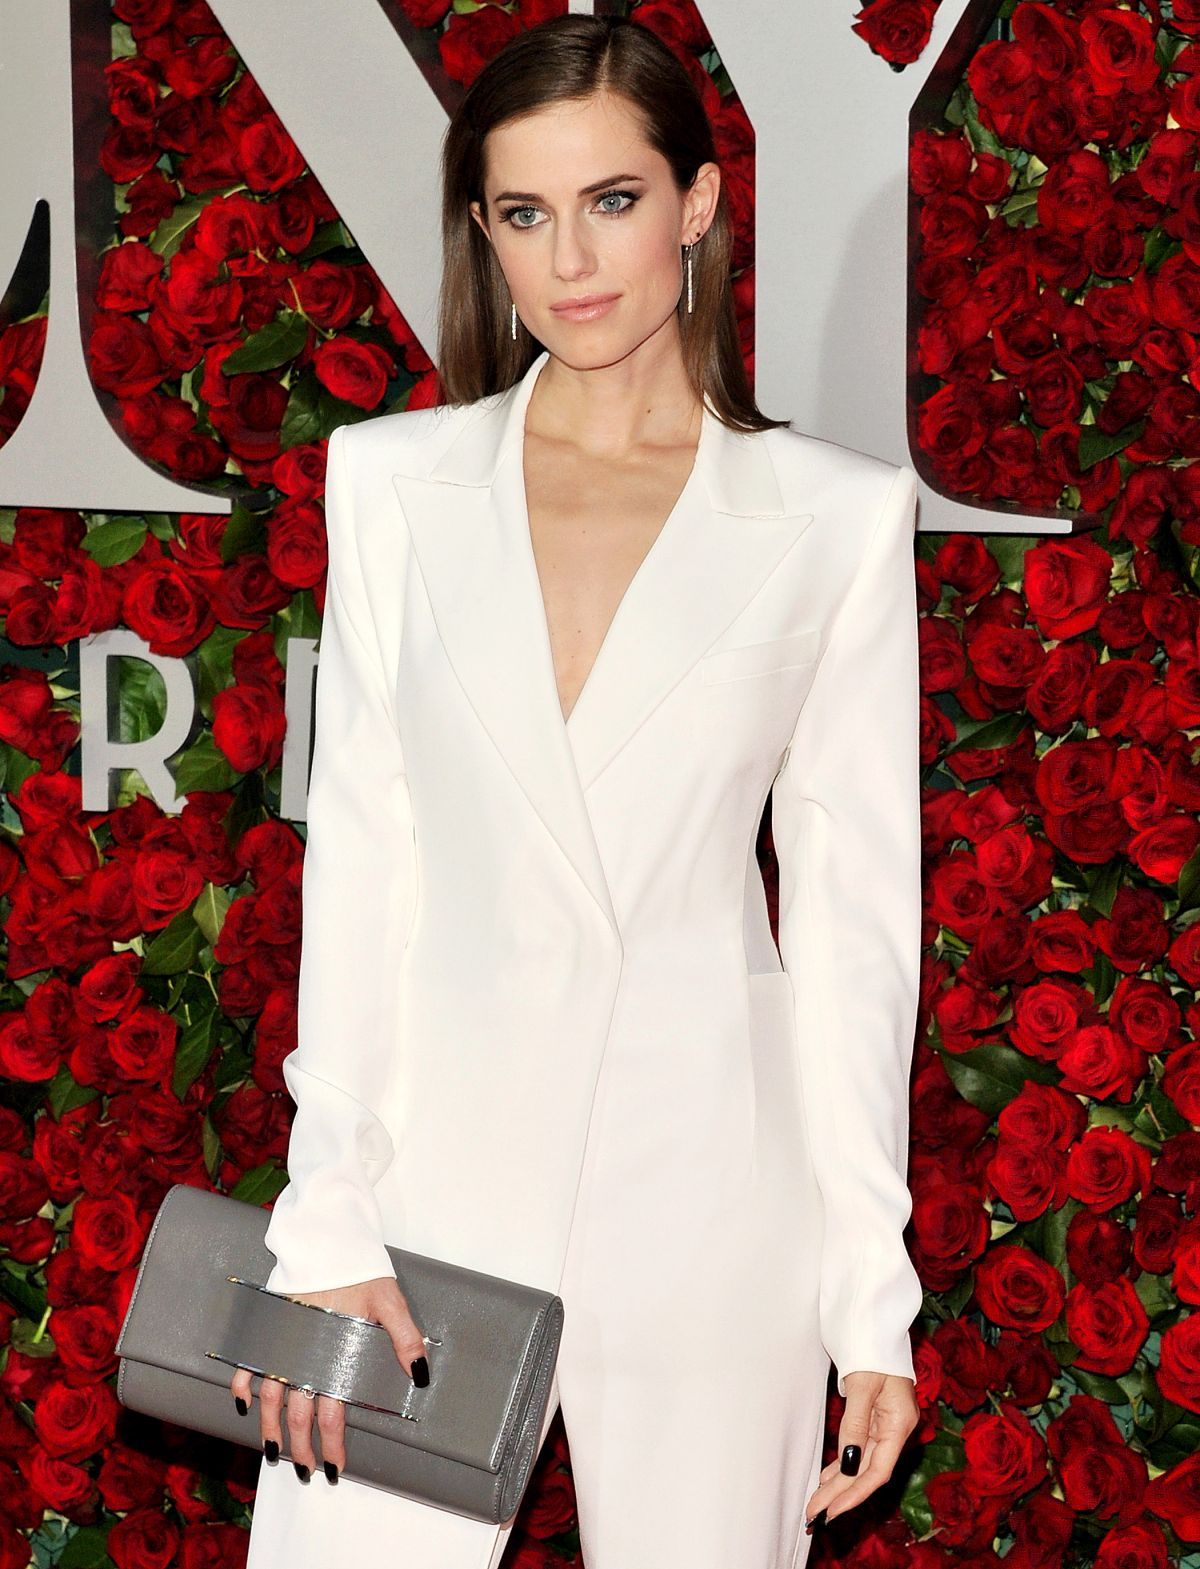 ALLISON WILLIAMS at 70th Annual Tony Awards in New York 06/12/2016